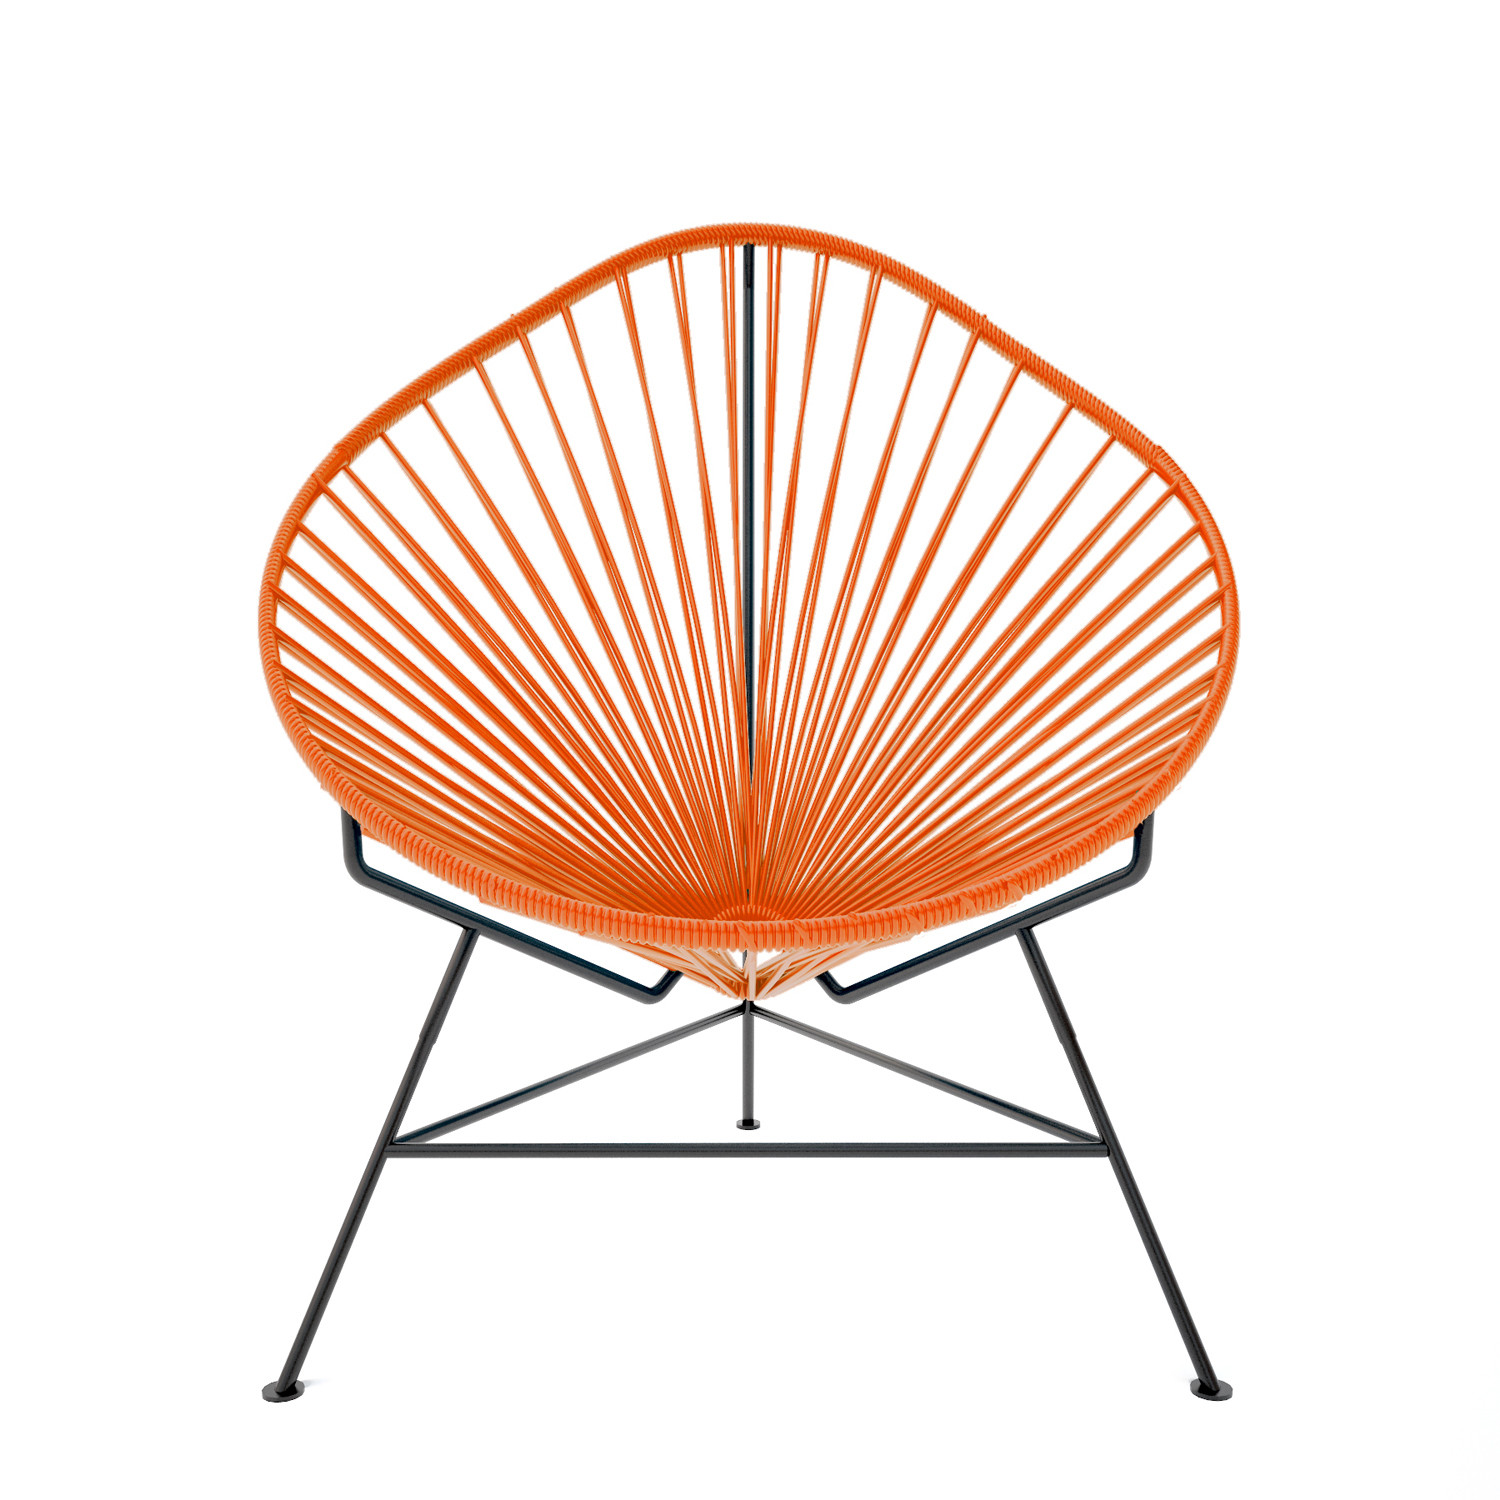 acapulco chair orange upholstered dining room chairs with arms weave on black frame innit